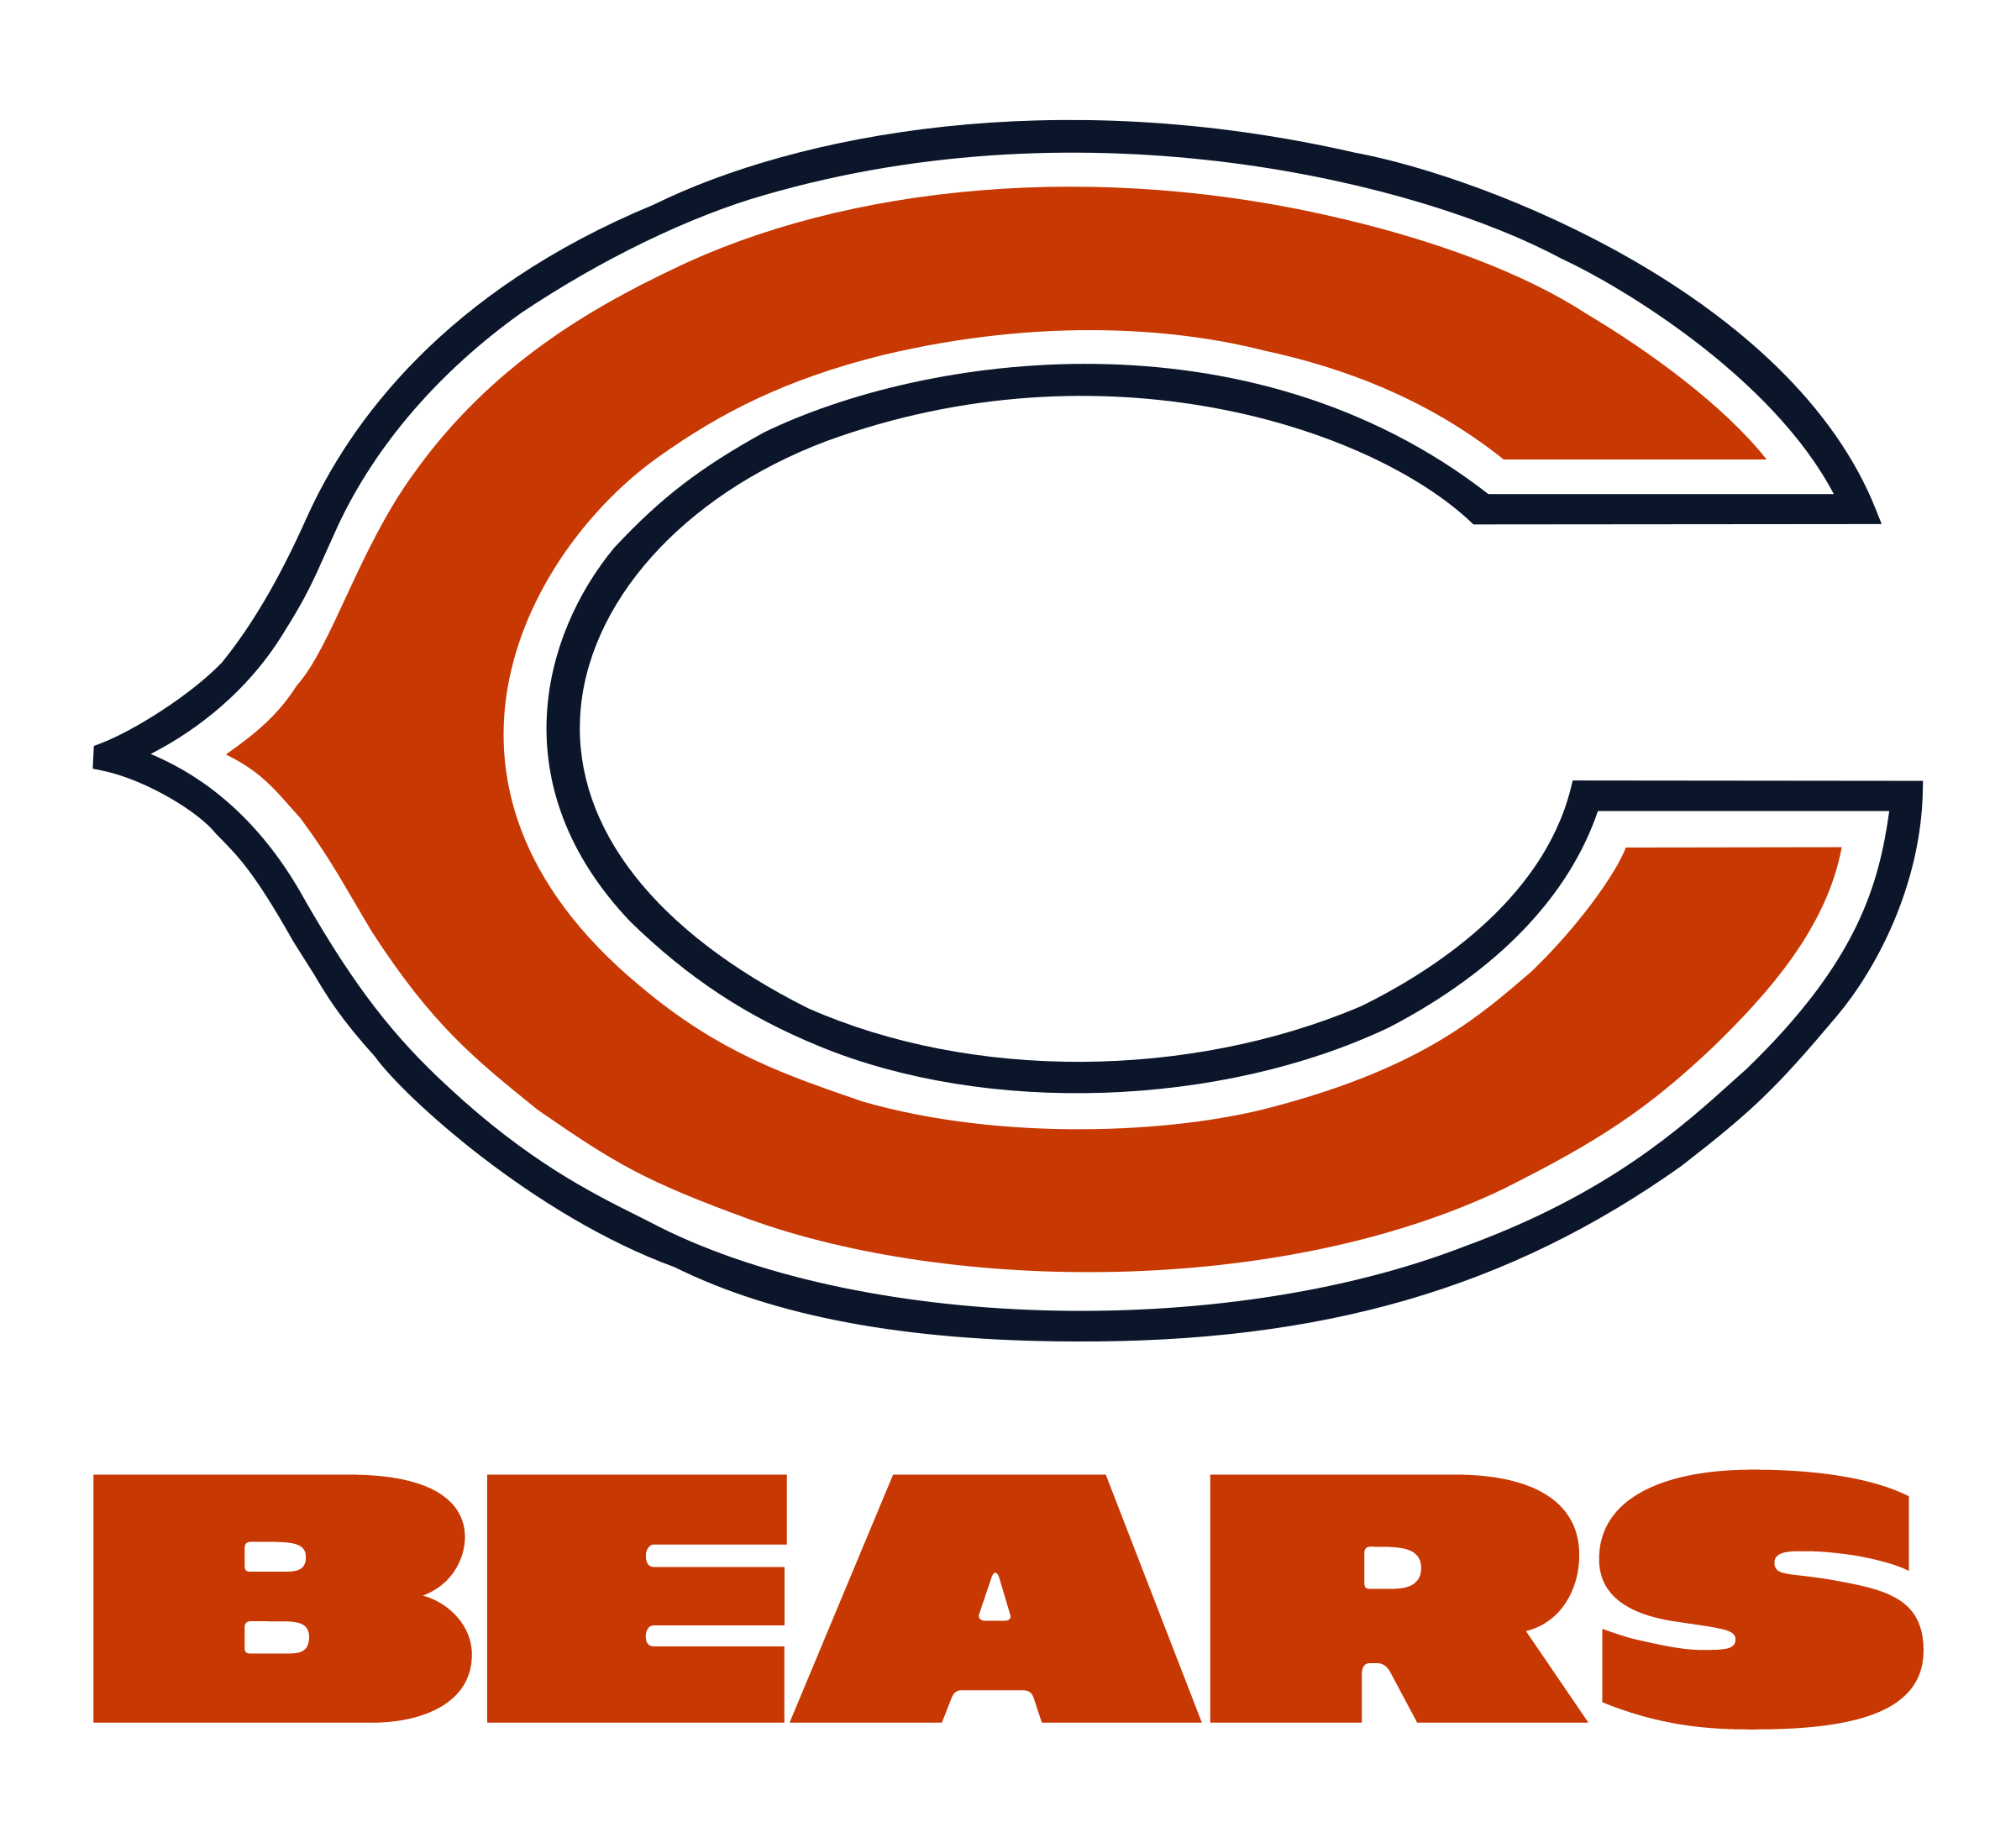 Download And Logos Uniforms Chicago Bears Of Nfl Clipart PNG Free.